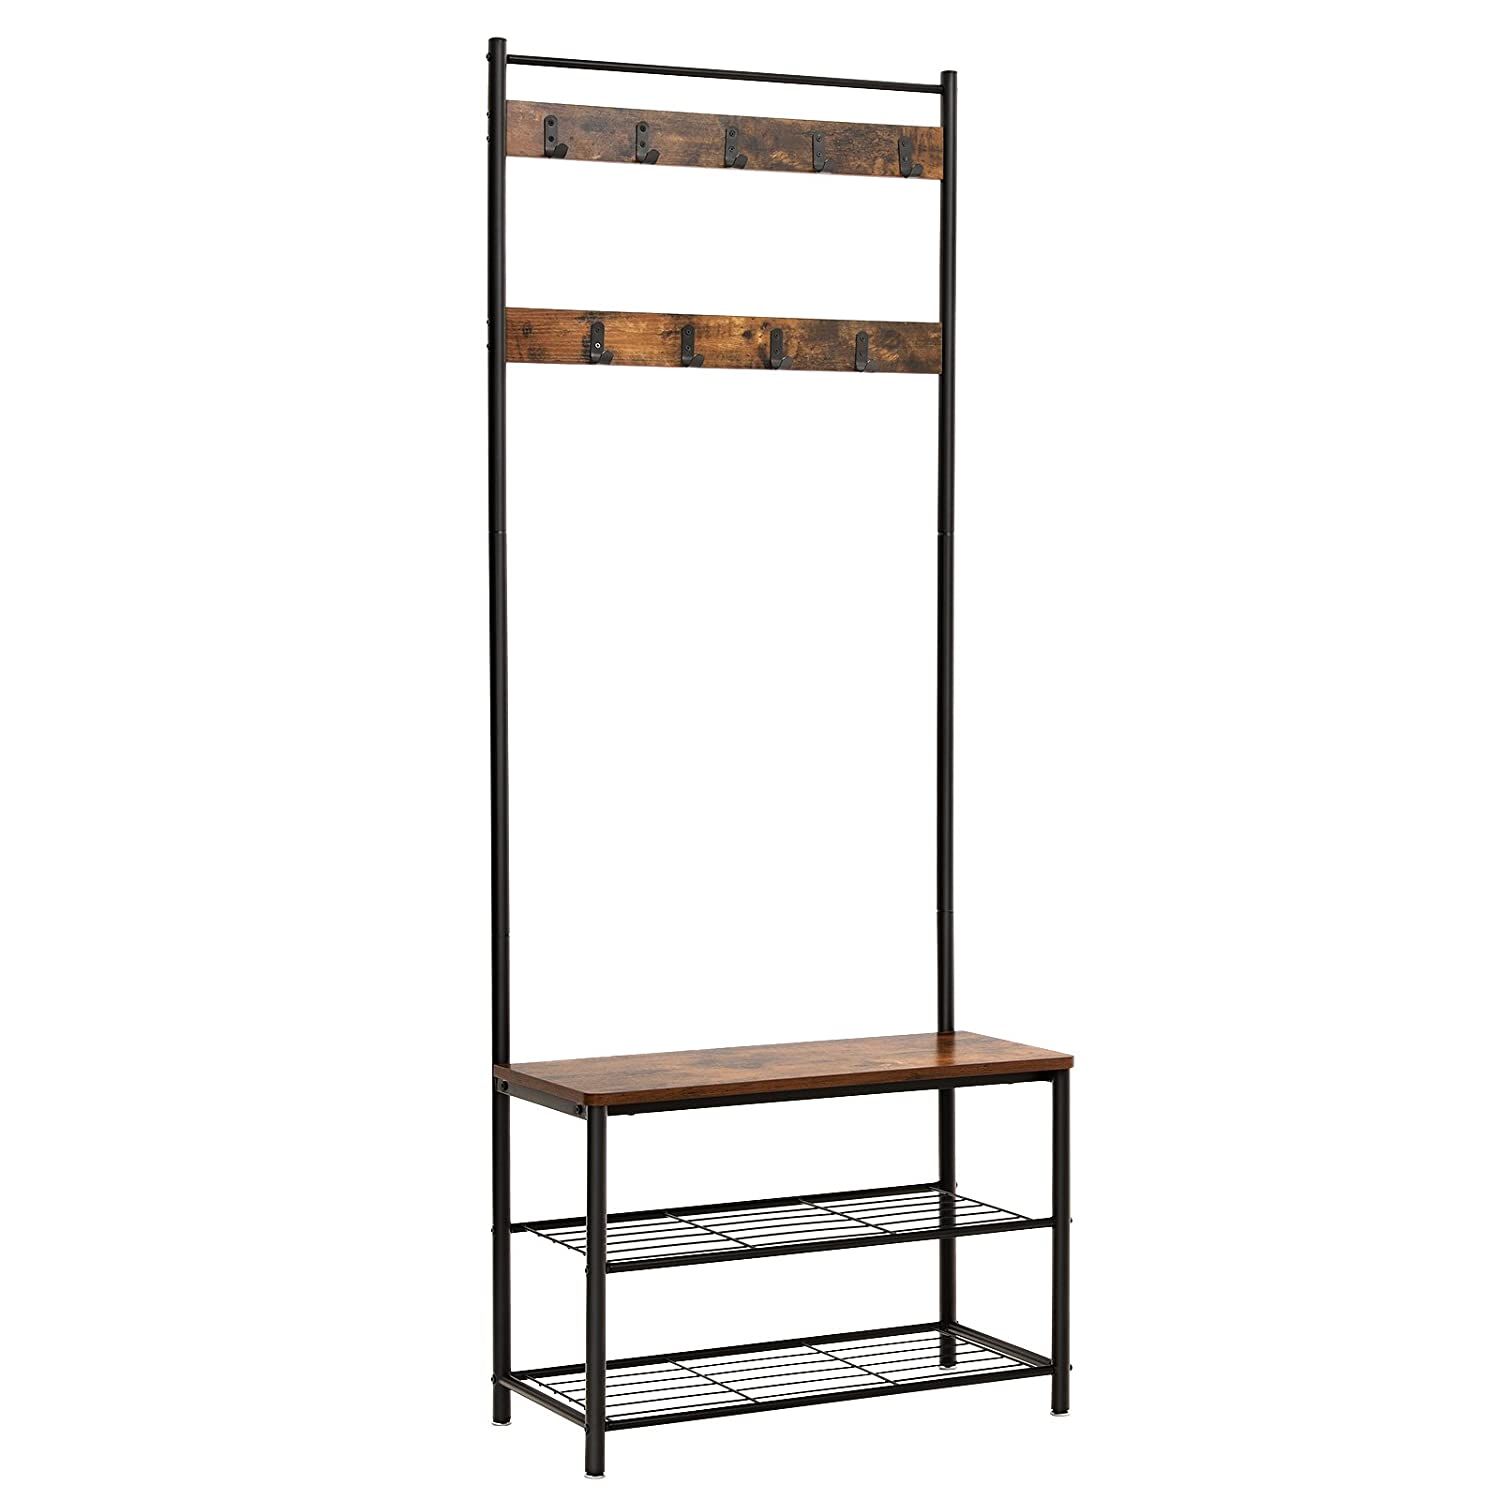 Vasagle Coat Rack Stand, Industrial Coat Tree, Hallway Shoe Rack And Bench  With Shelves, Hall Tree With Hooks, Matte Metal Frame, Height 175 Cm Rustic